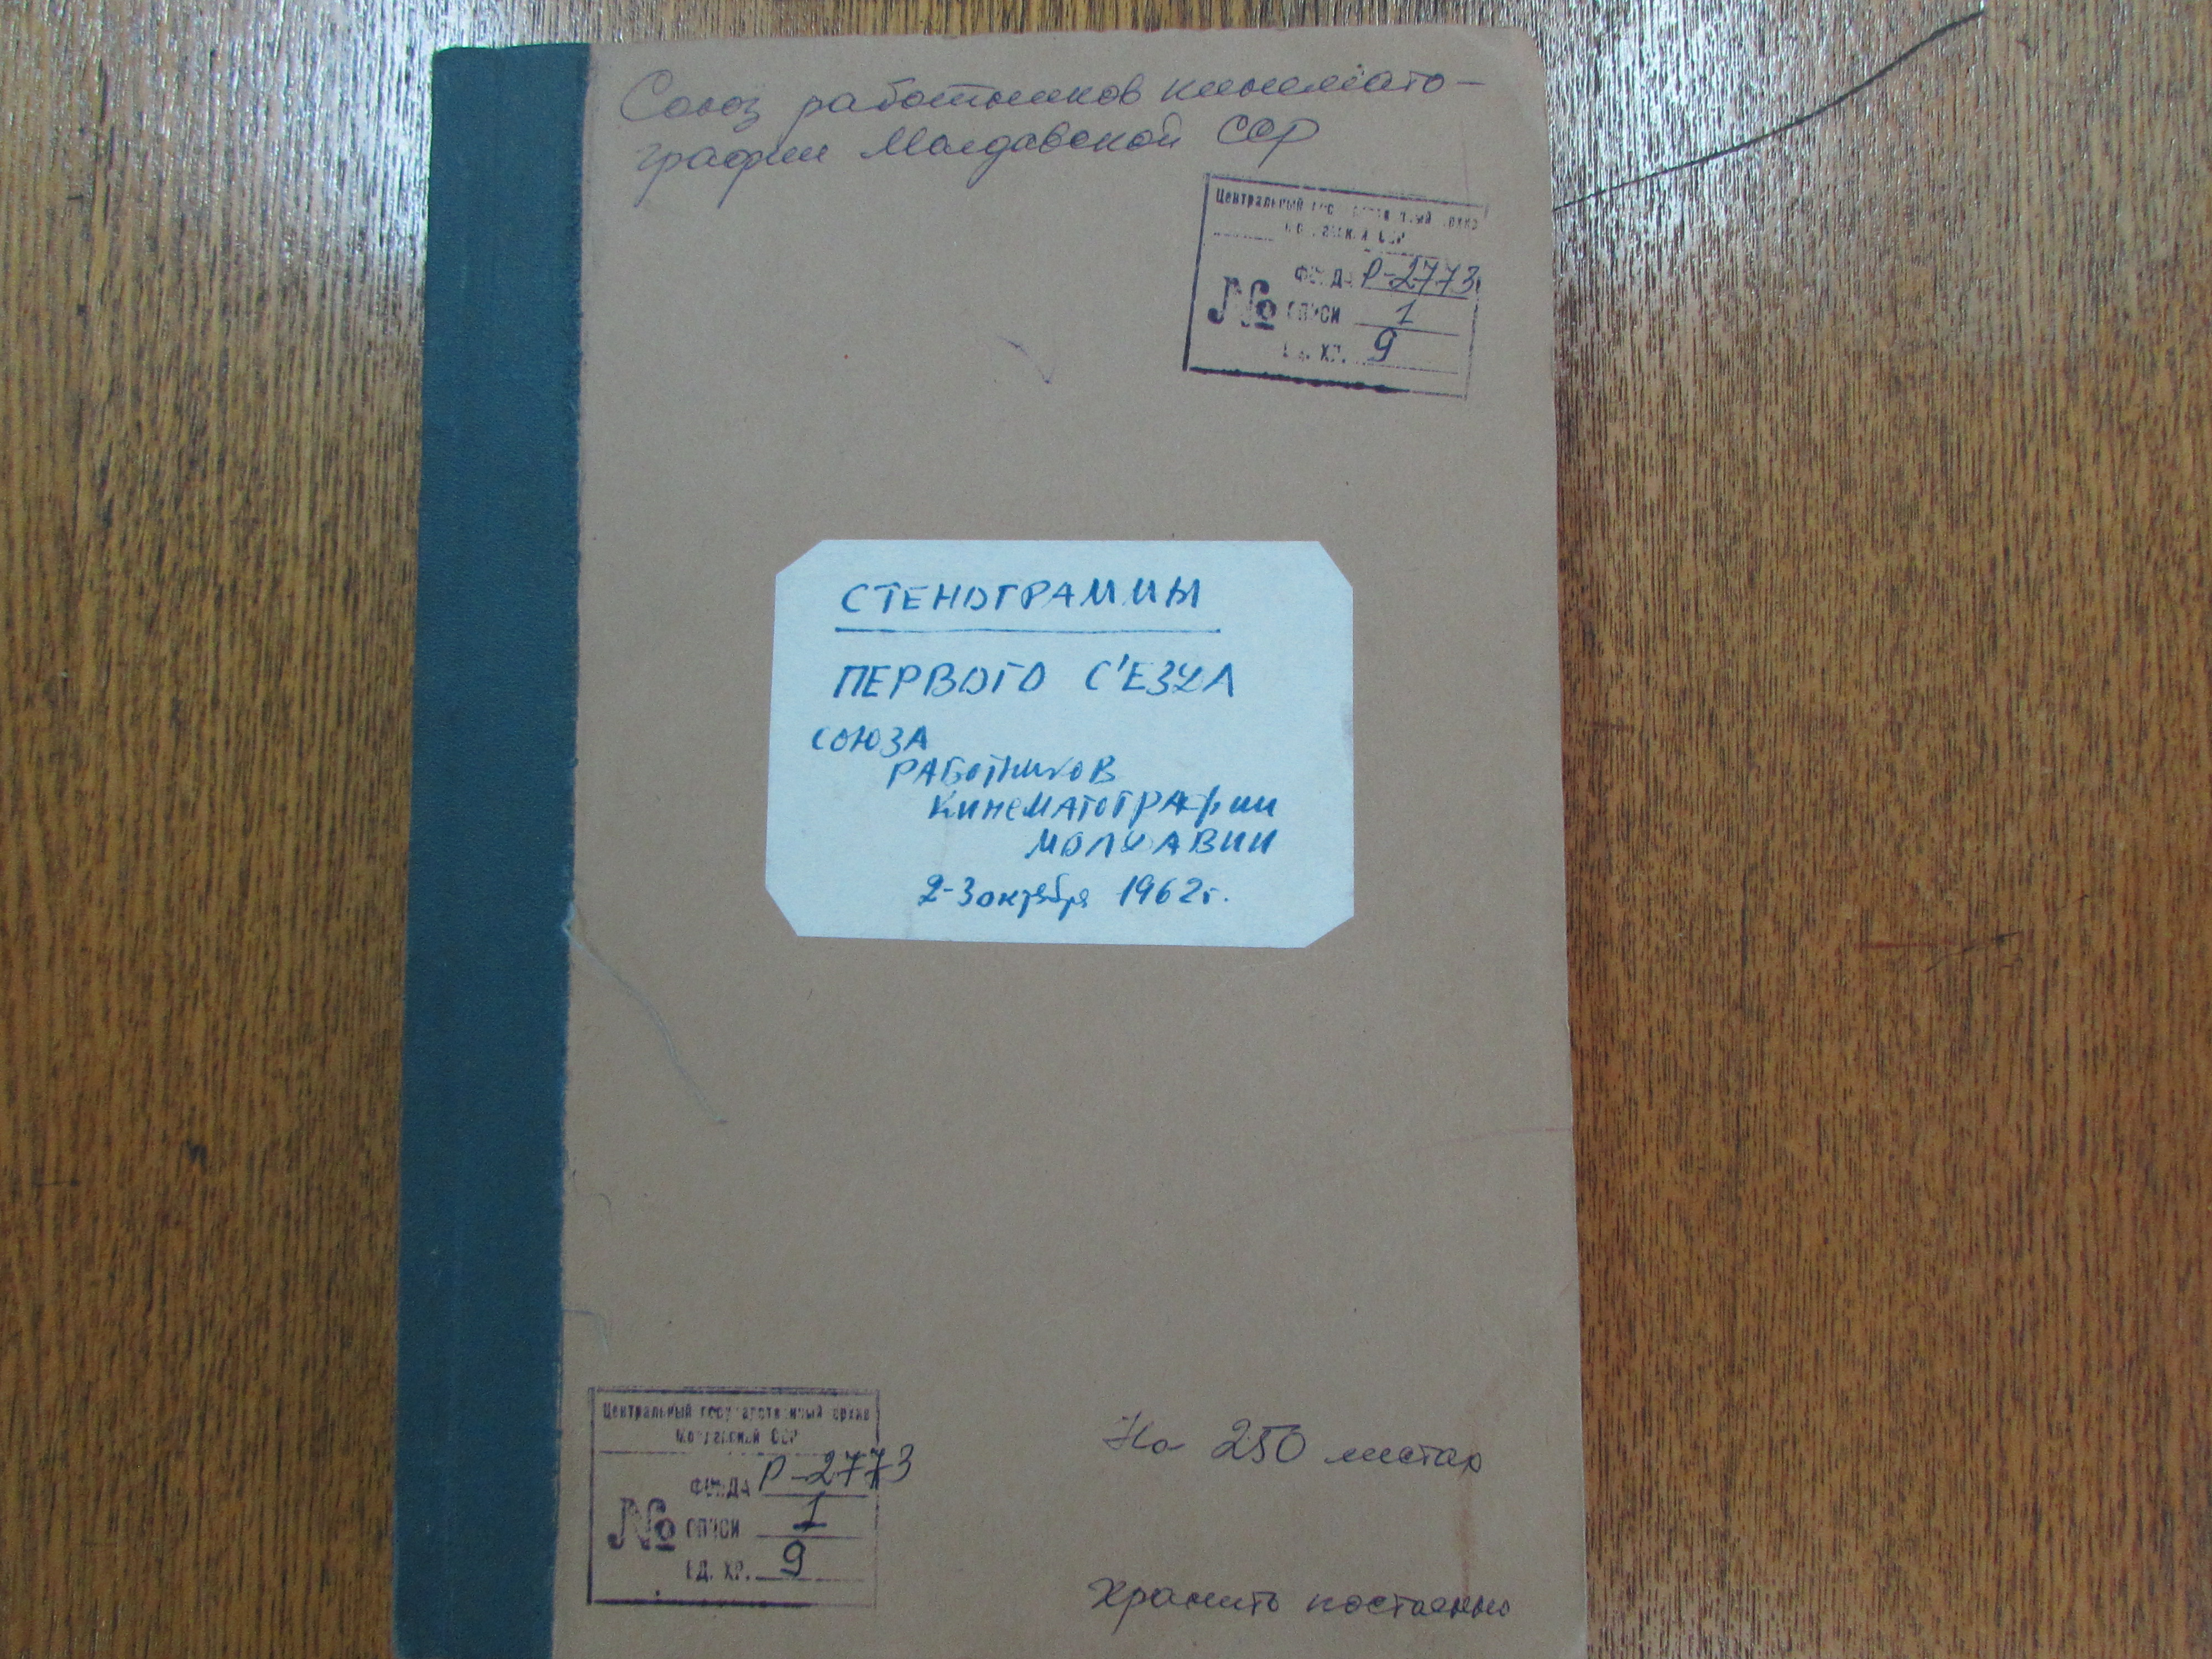 Cover of the AOSPRM file on the First Congress of the MUC (2-3 October 1962)